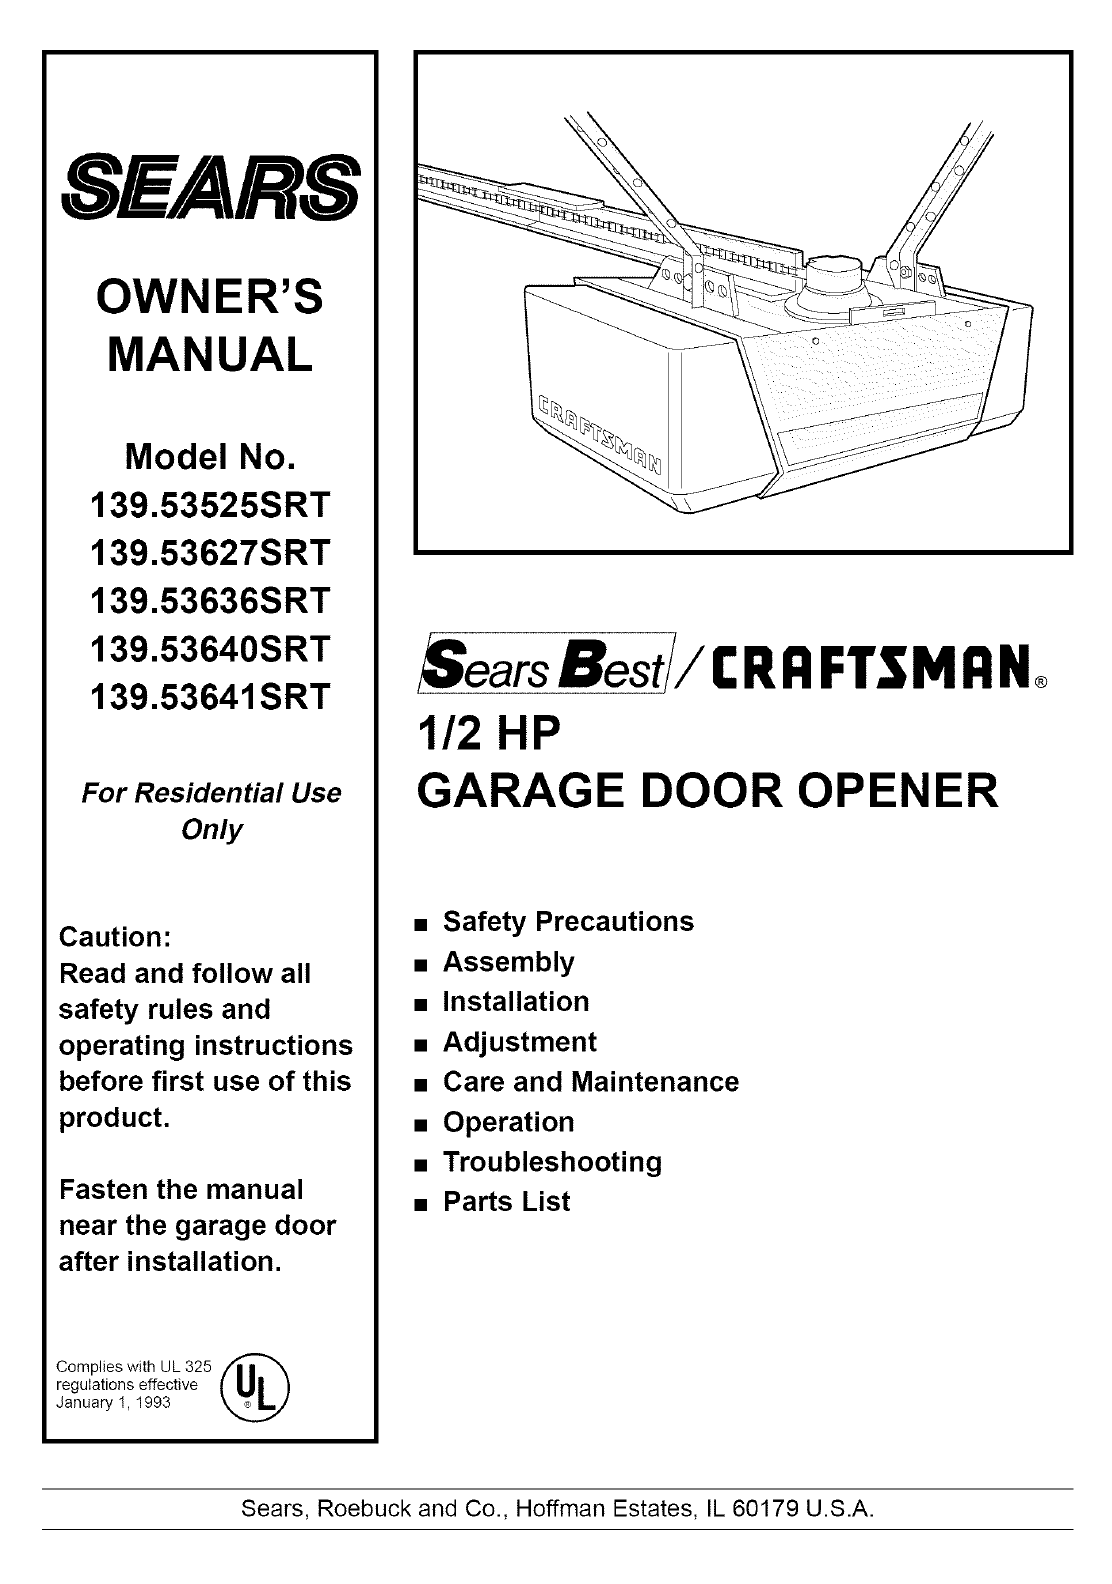 0f9358fc e573 48d6 abc7 d4b07ca44aed bg1 sears garage door opener 139 53525srt user guide manualsonline com Basic Electrical Wiring Diagrams at bayanpartner.co